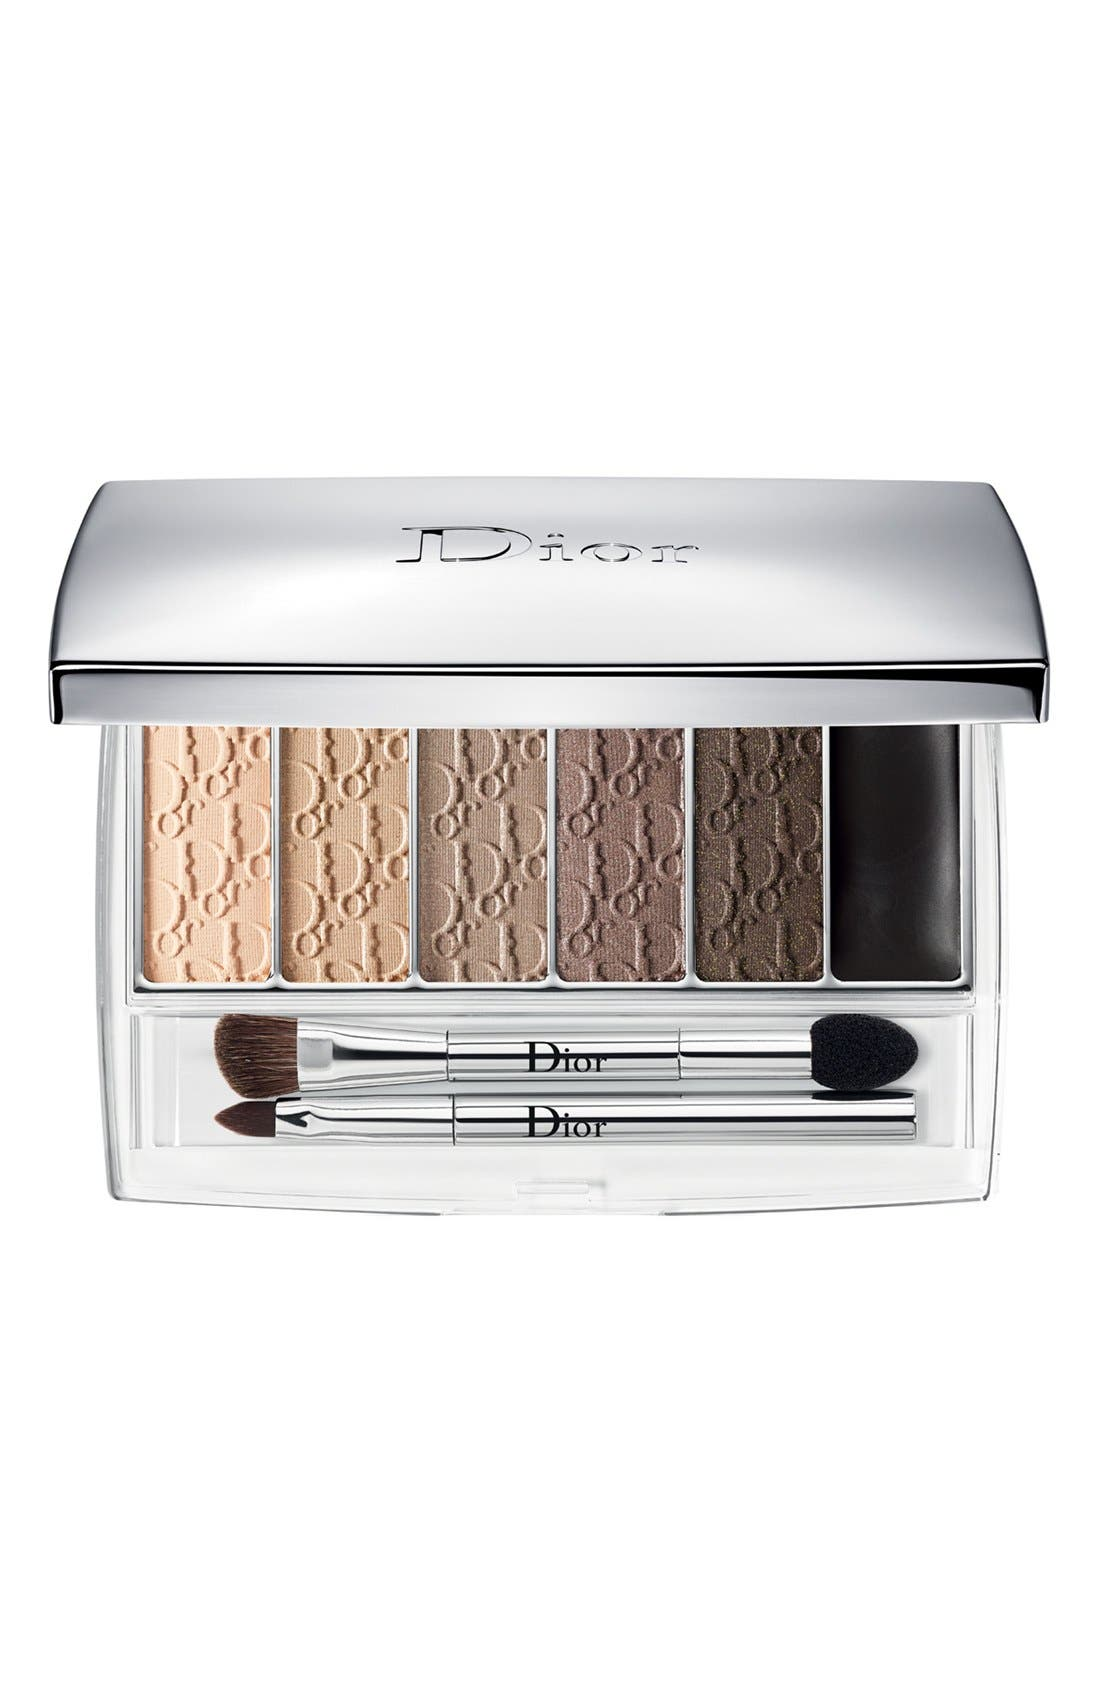 Dior 'Eye Reviver' Eyeshadow Palette